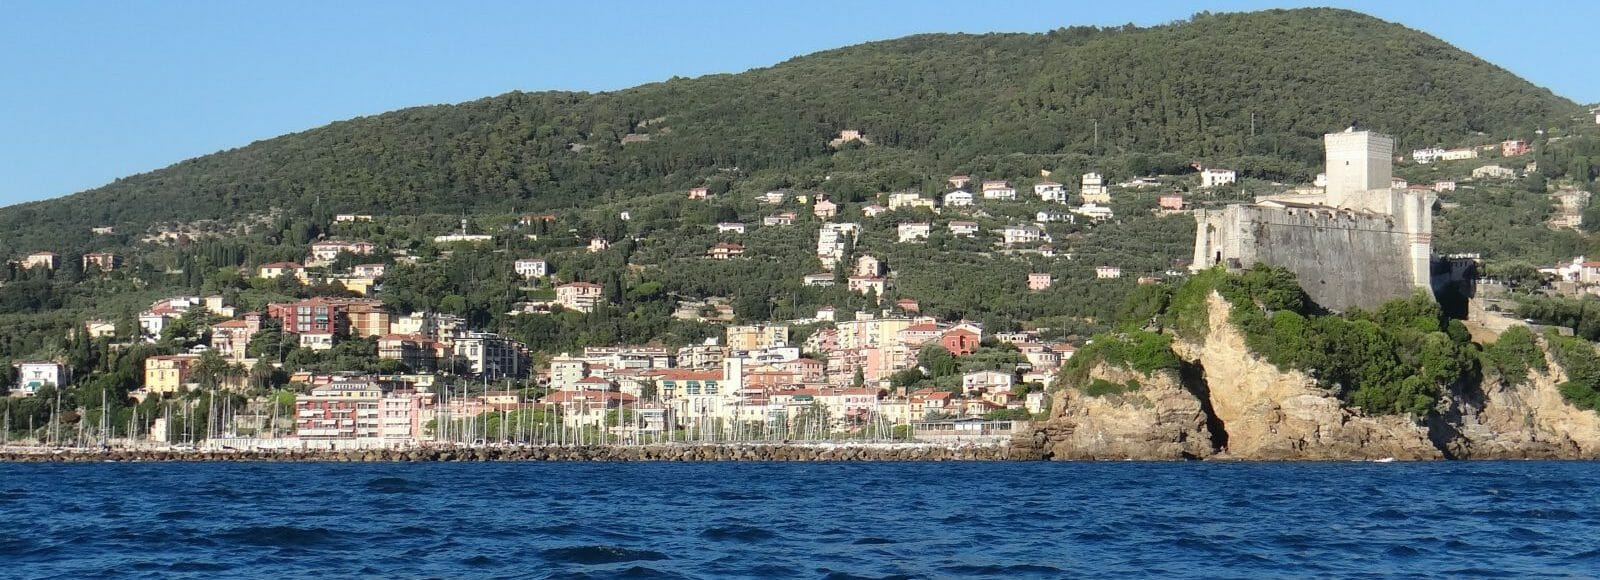 aug 23c past lerici 001